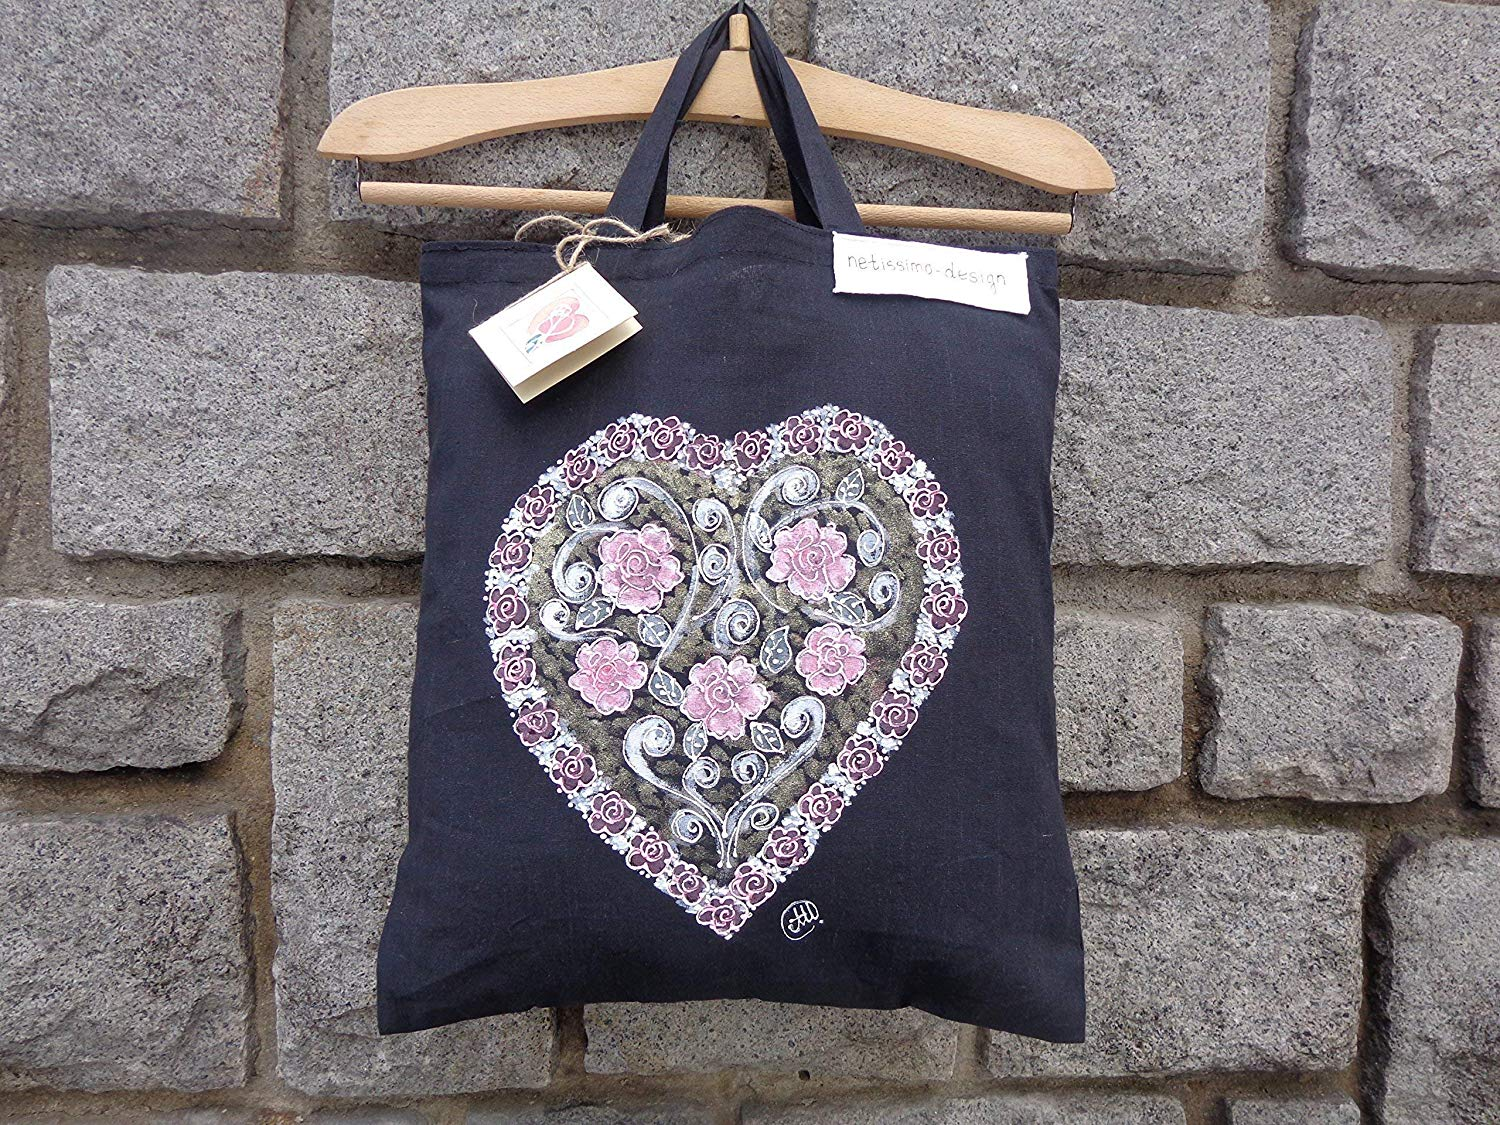 Sale!!!15% Off,Flower heart Hand Painted organic cotton tote bag,Acrylic Painted,Heart Black Tote Bag,Love Heart Valentines.